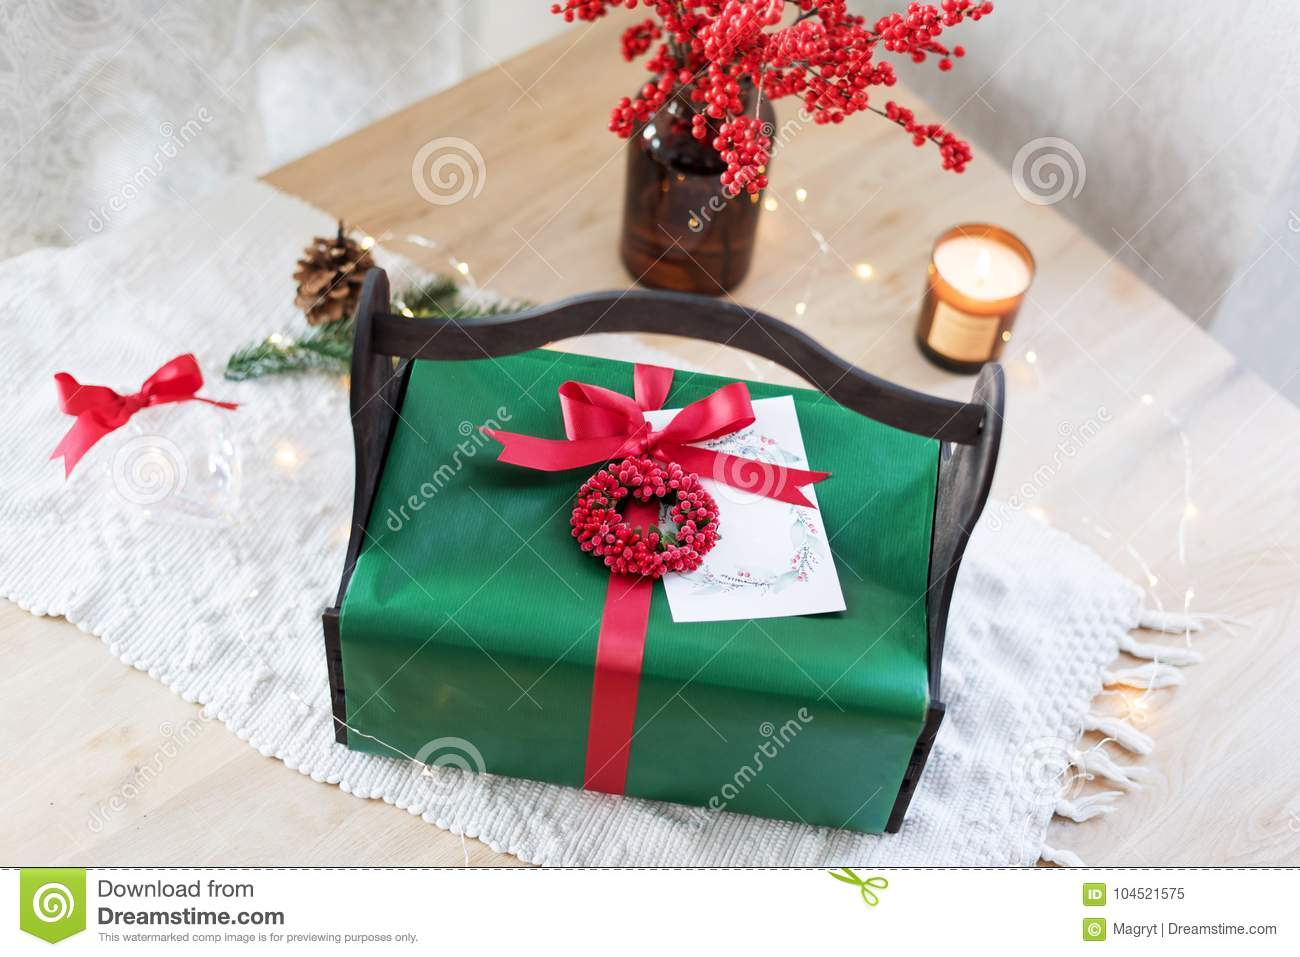 homemade wrapped christmas present with tools and decorations top view packing christmas gifts